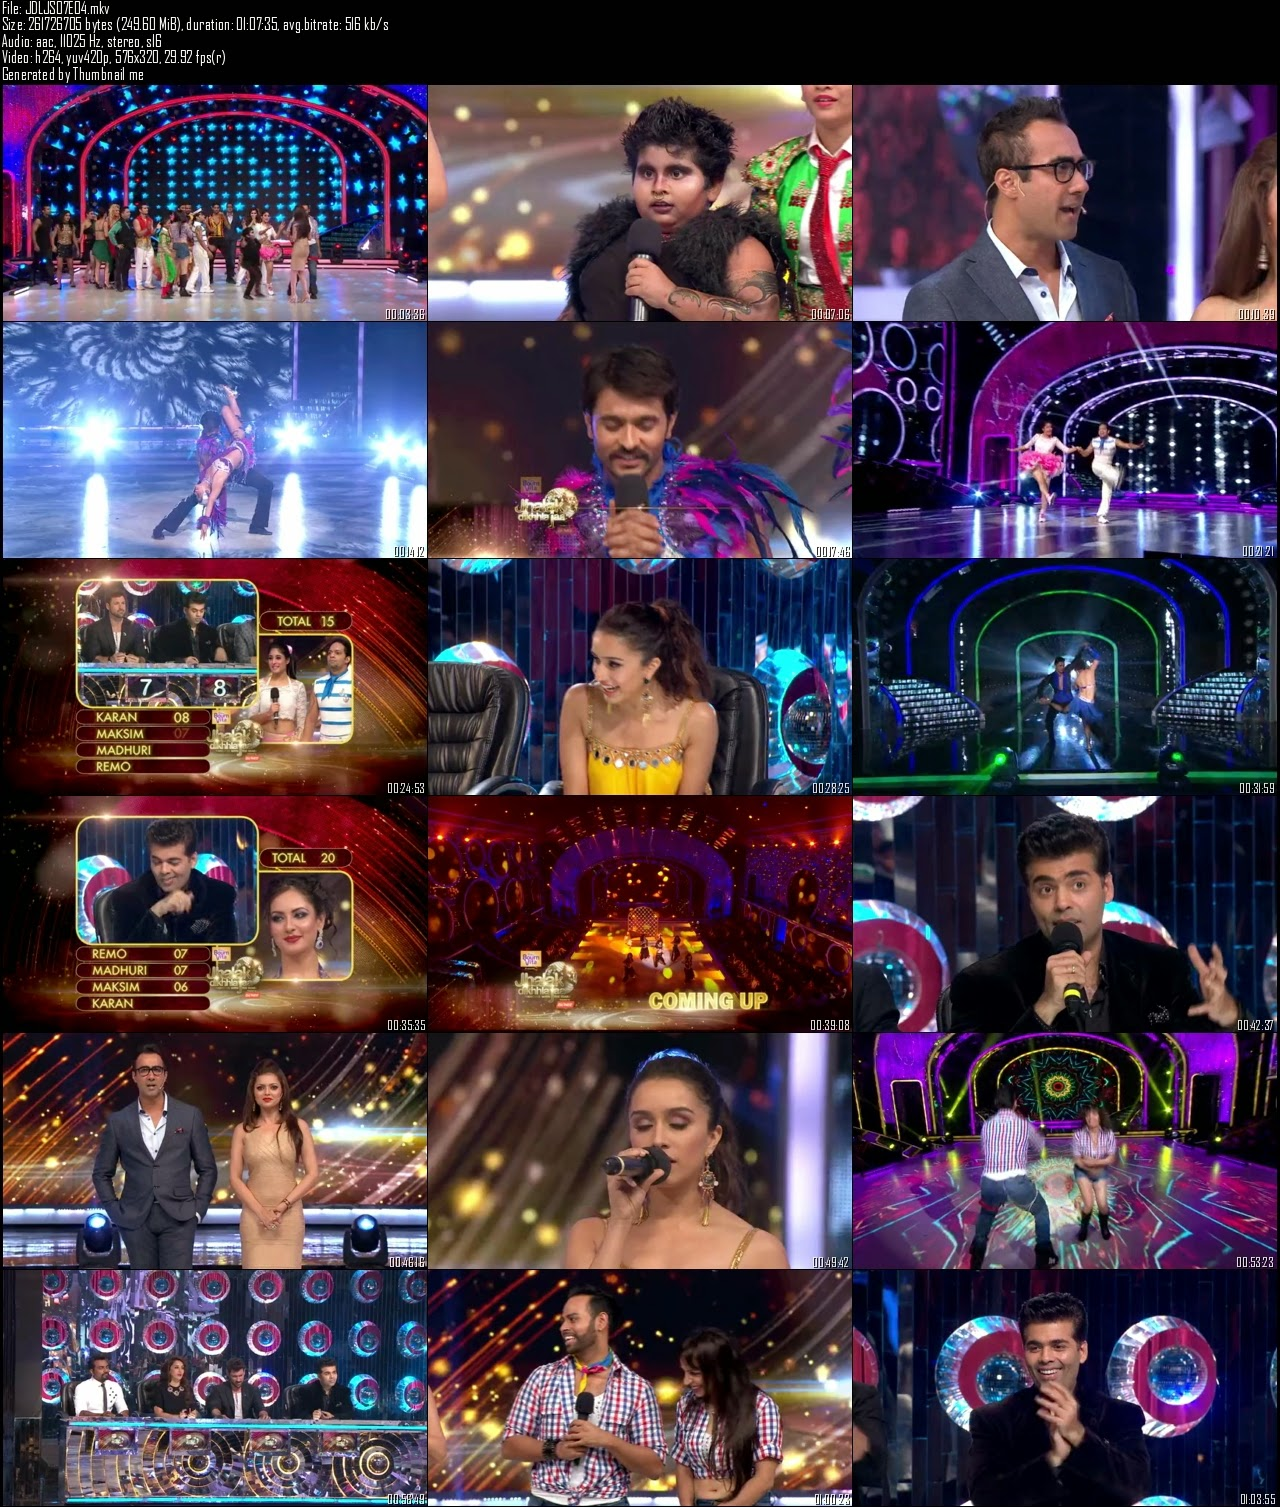 Resumable Mediafire Download Link For Hindi Show Jhalak Dikhla Jaa Season 7 (2014) 15th June 2014 Watch Online Download